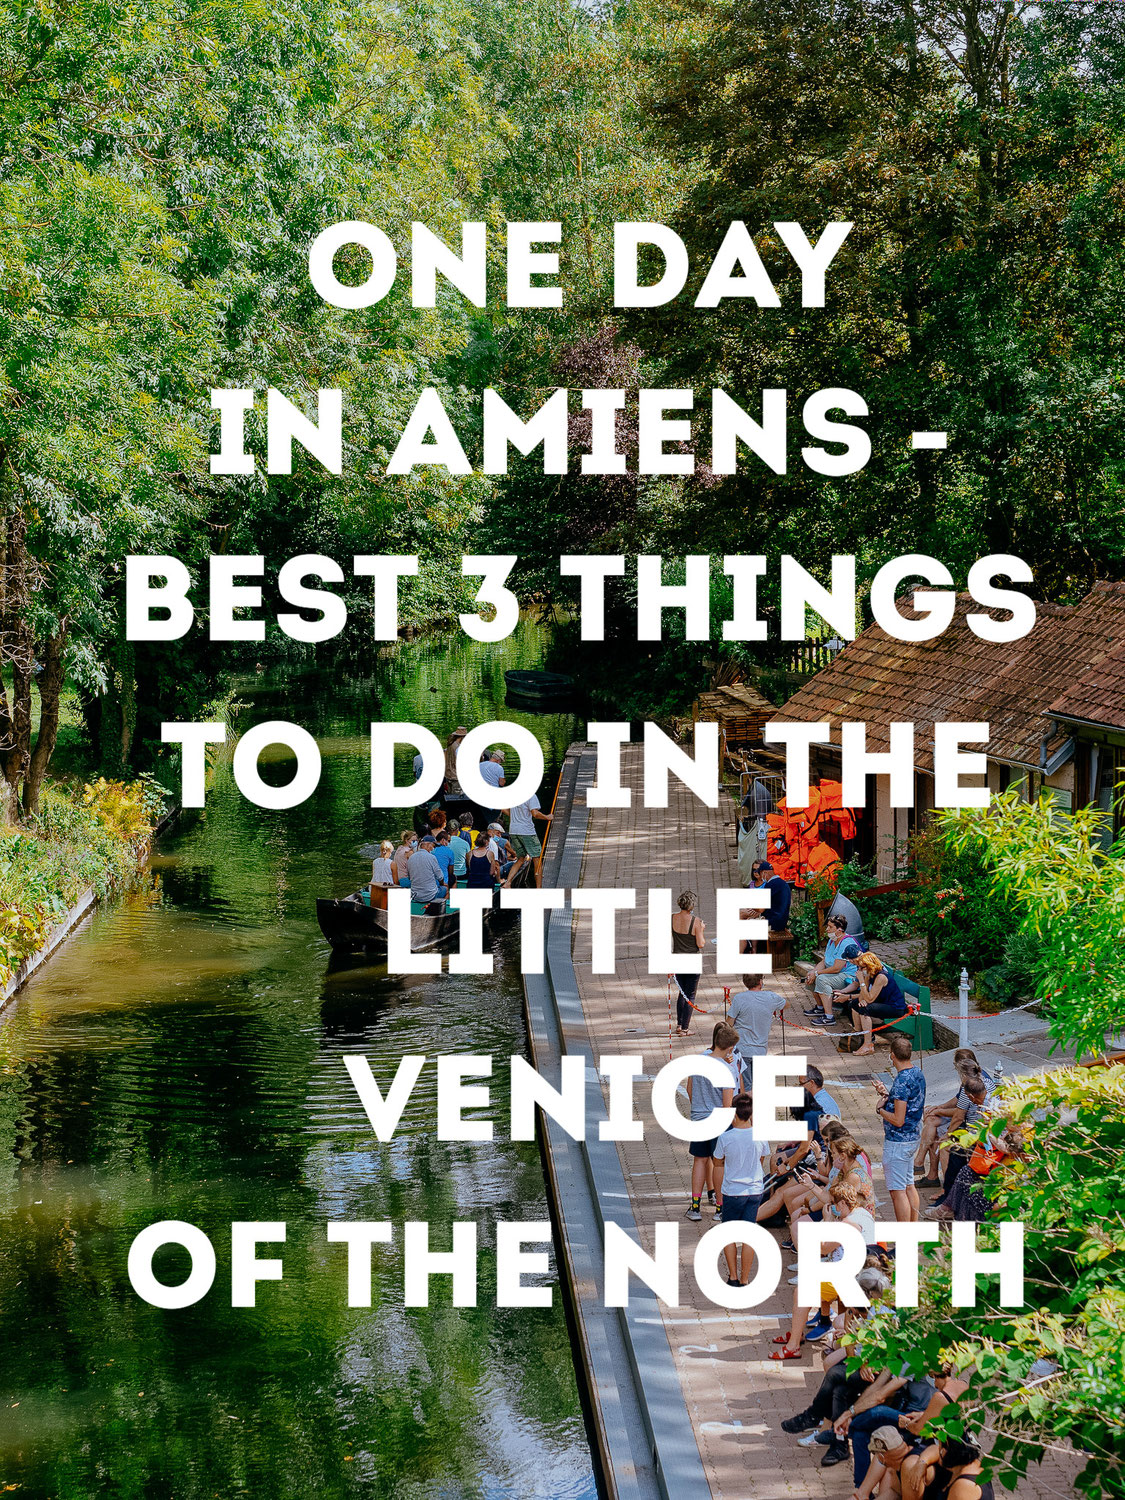 One Day in Amiens - Best 3 Things to Do in The Little Venice of the North